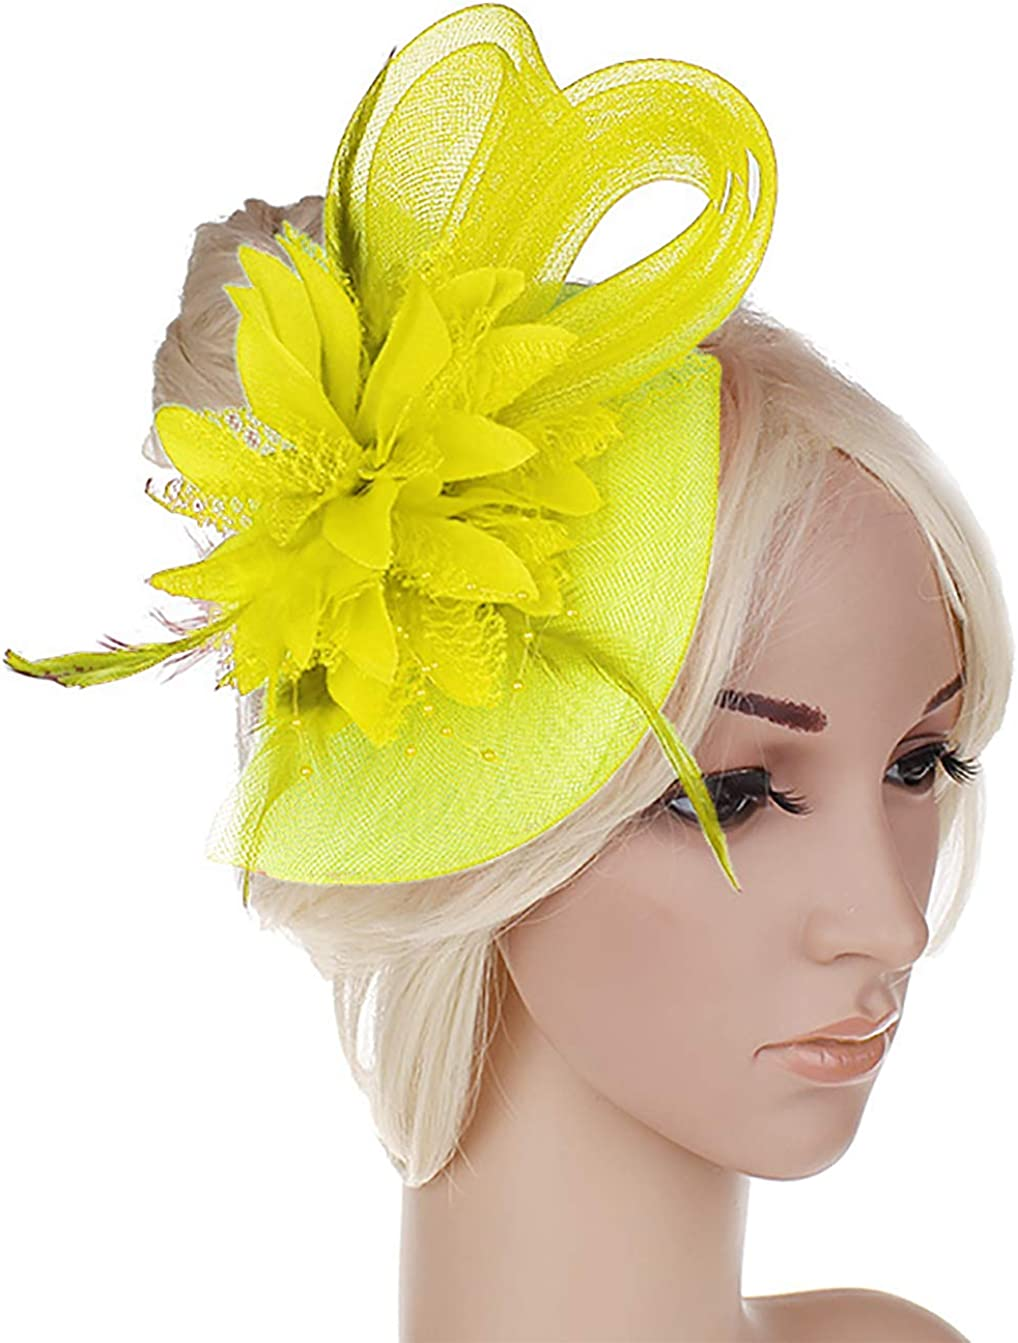 Anita Women's Fascinators Small Hairpin Feather hat (One Size, Yellow) at  Amazon Women's Clothing store